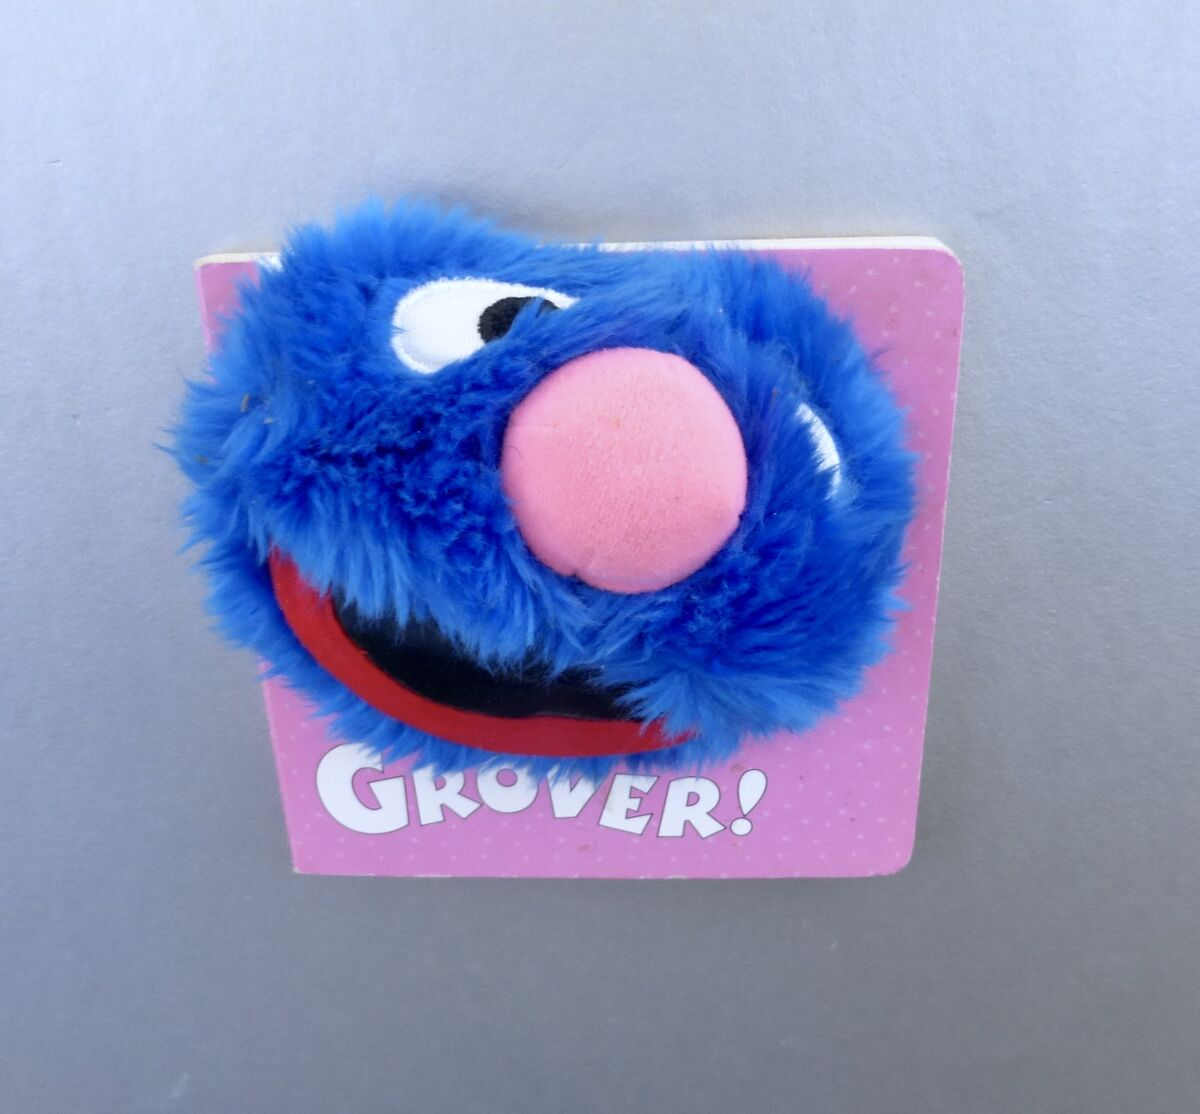 Vintage Grover Sesame Book Furry Face Picture Board Anna Ross Street Children Kid Muppet TV 3D Illustration Graphic Blue Monster First Baby - product images  of